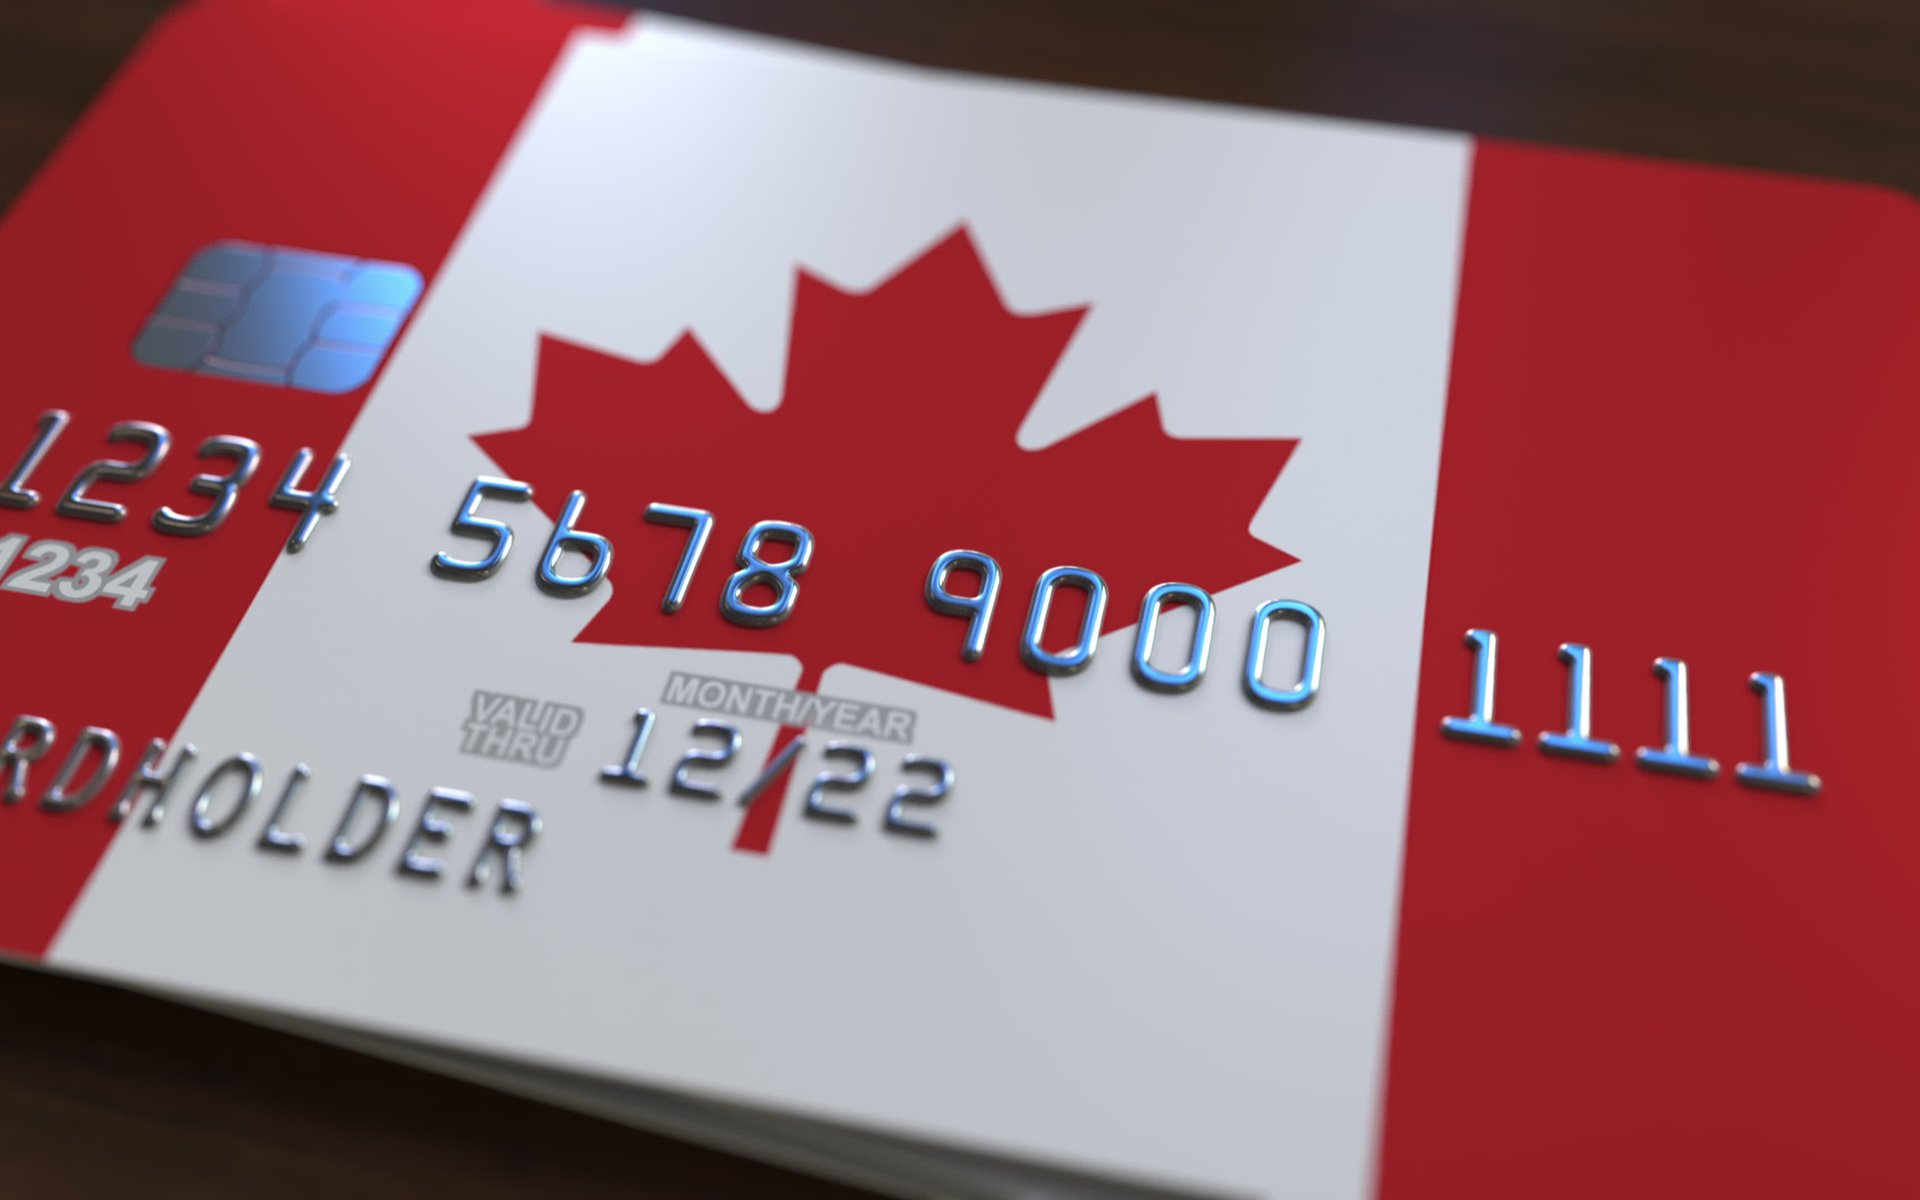 Canadians Can Now Buy Bitcoin With a Credit Card From an App